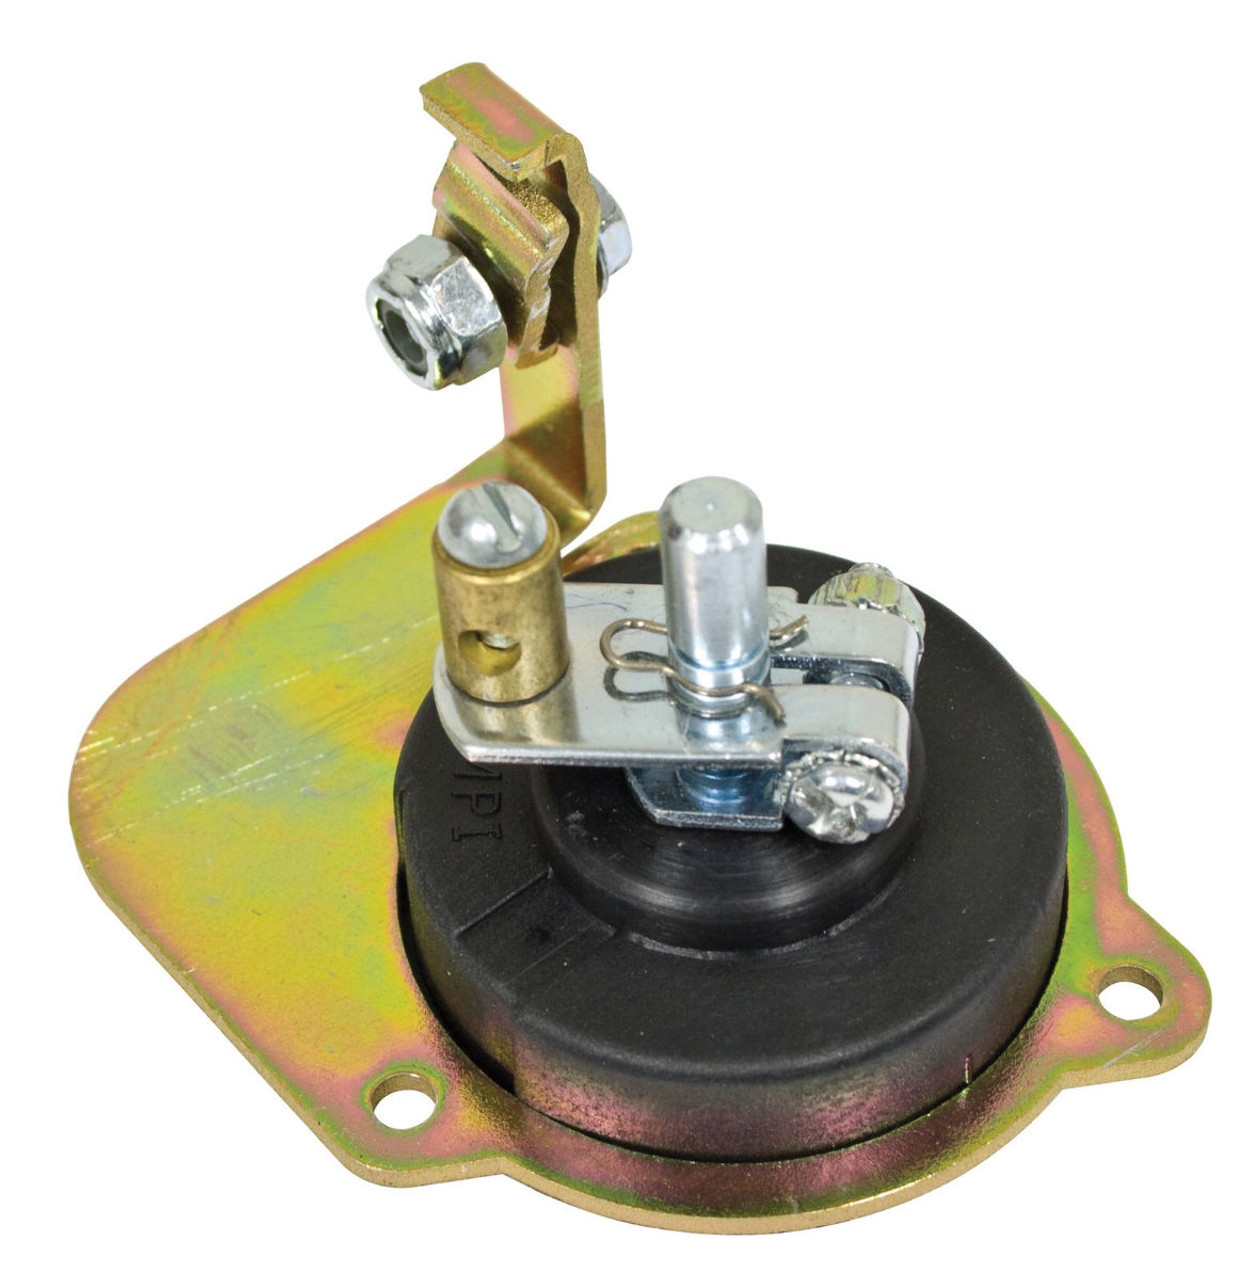 43-5352-0 MANUAL CHOKE ASSEMBLY